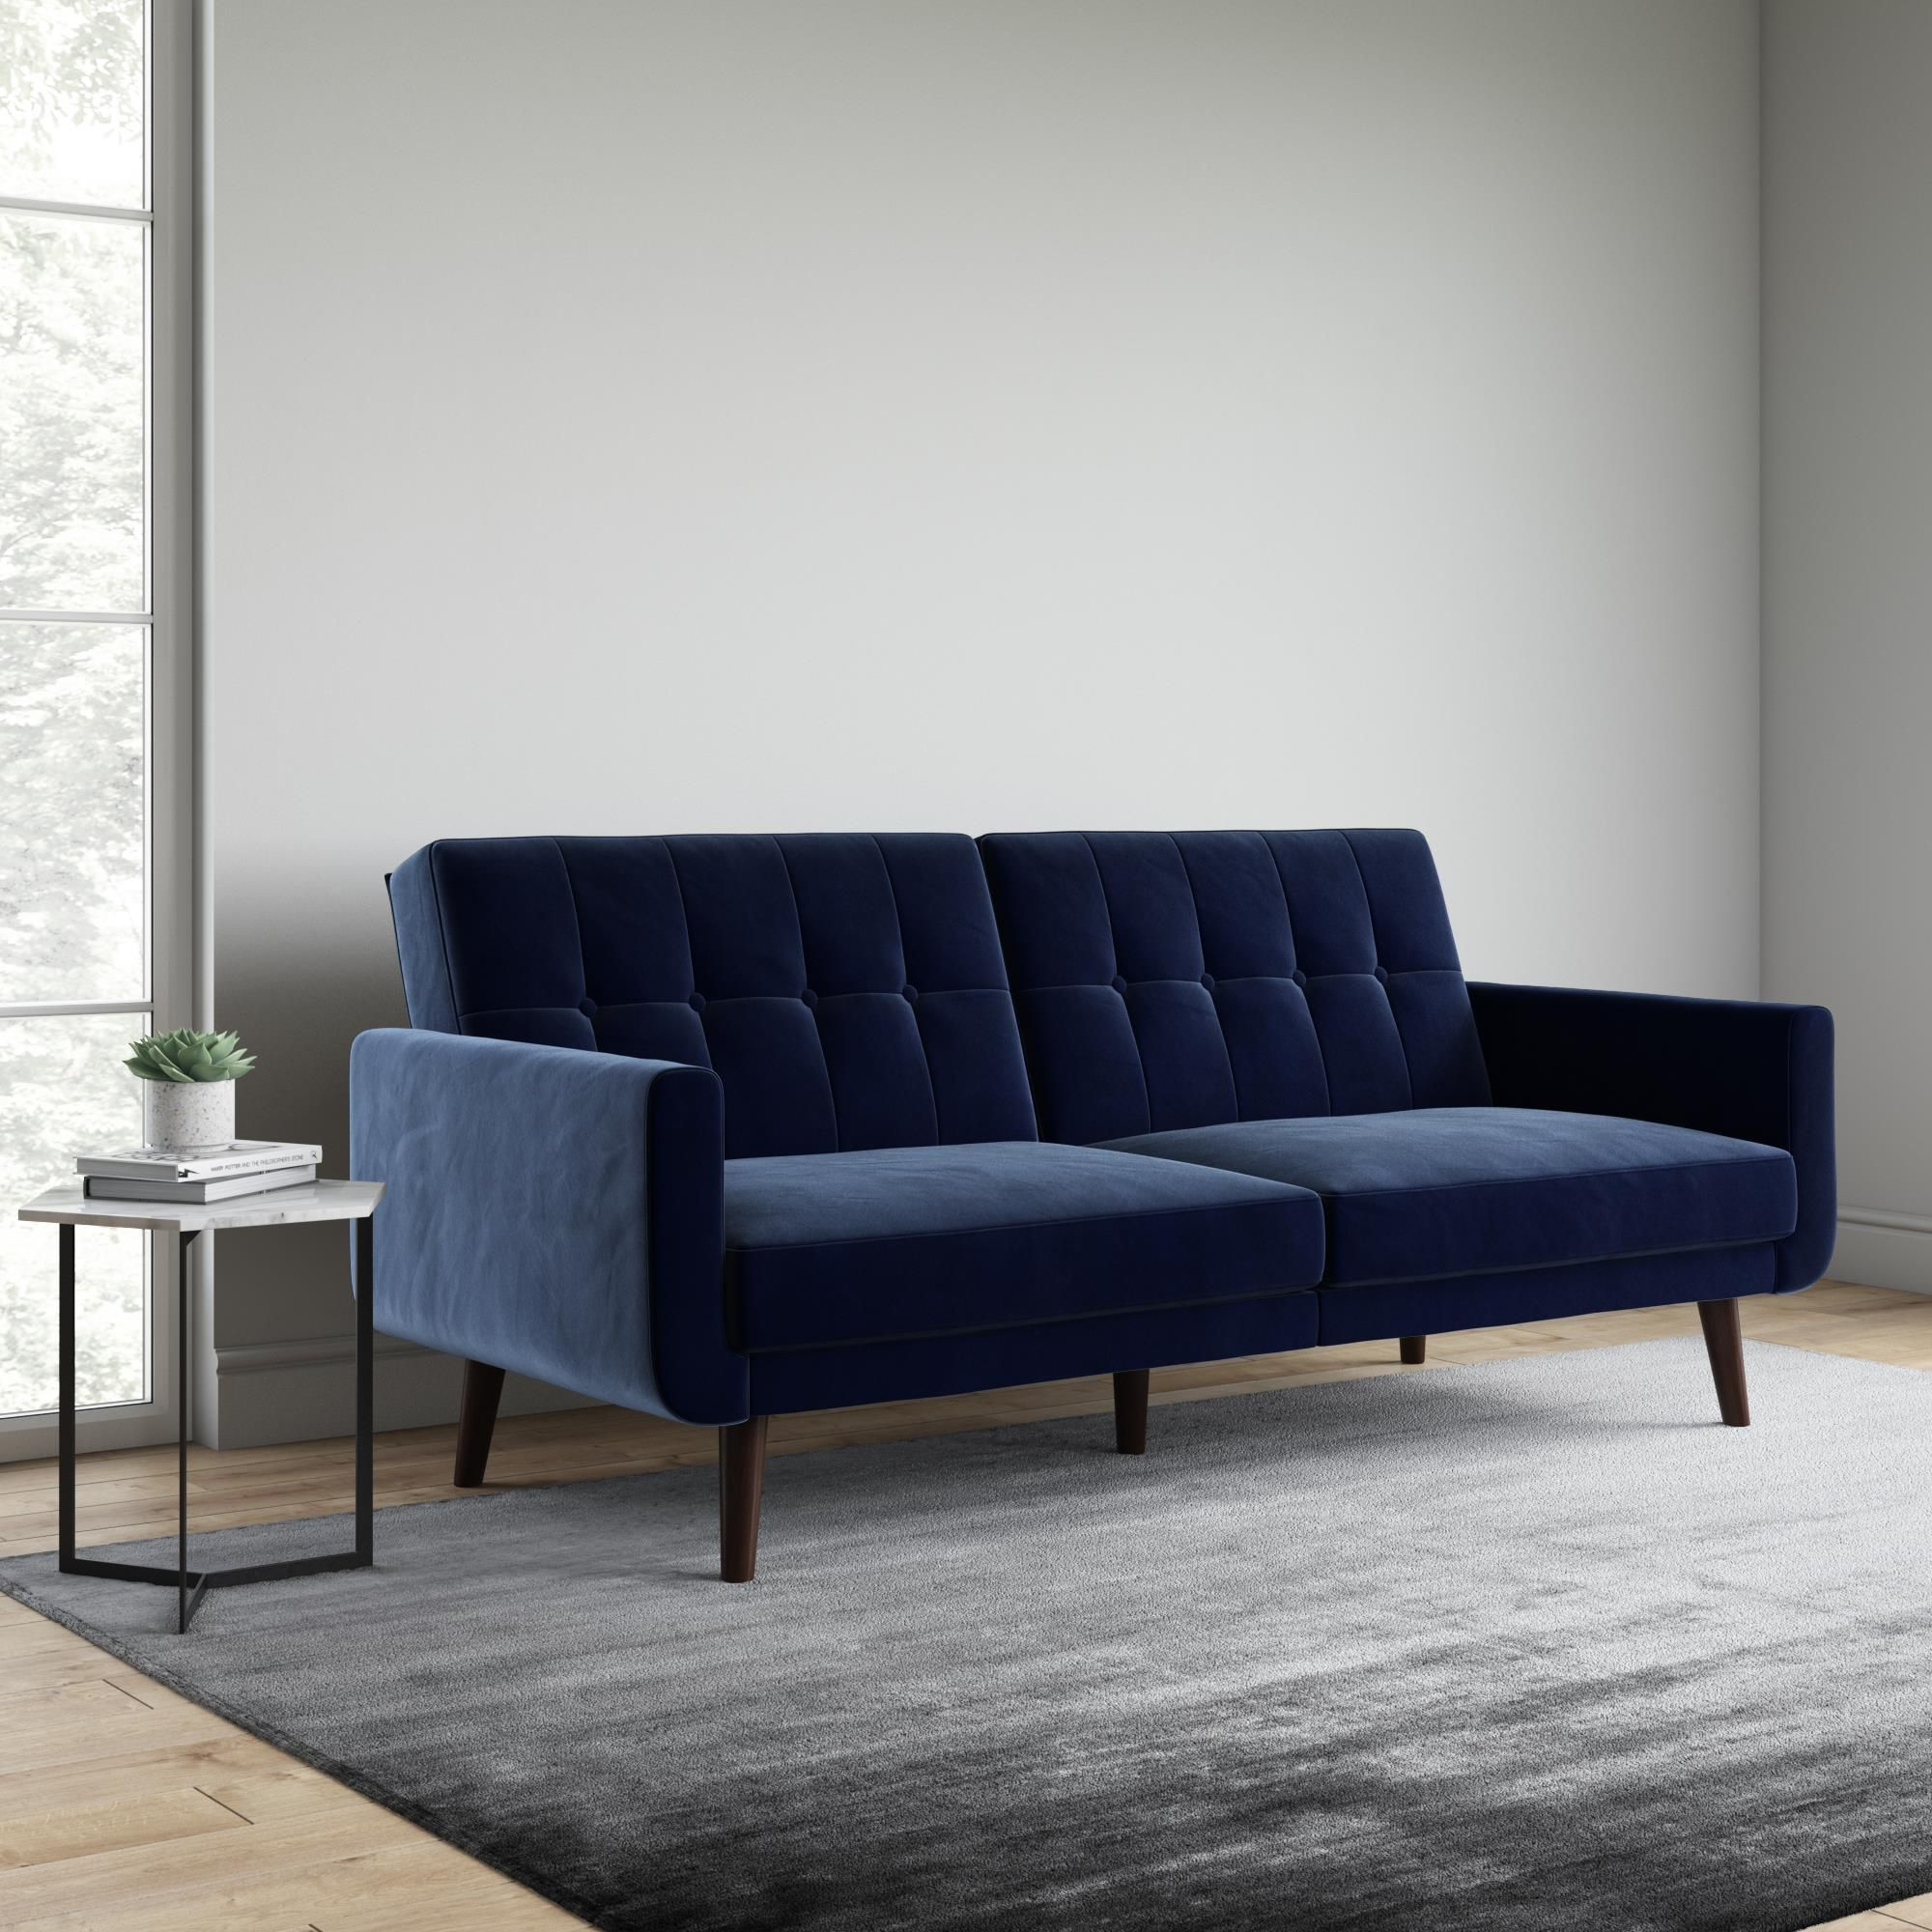 Better Homes And Gardens Nola Modern Futon Blue Velvet Walmart Com In 2020 Modern Sofa Bed Modern Futon Modern Blue Sofa